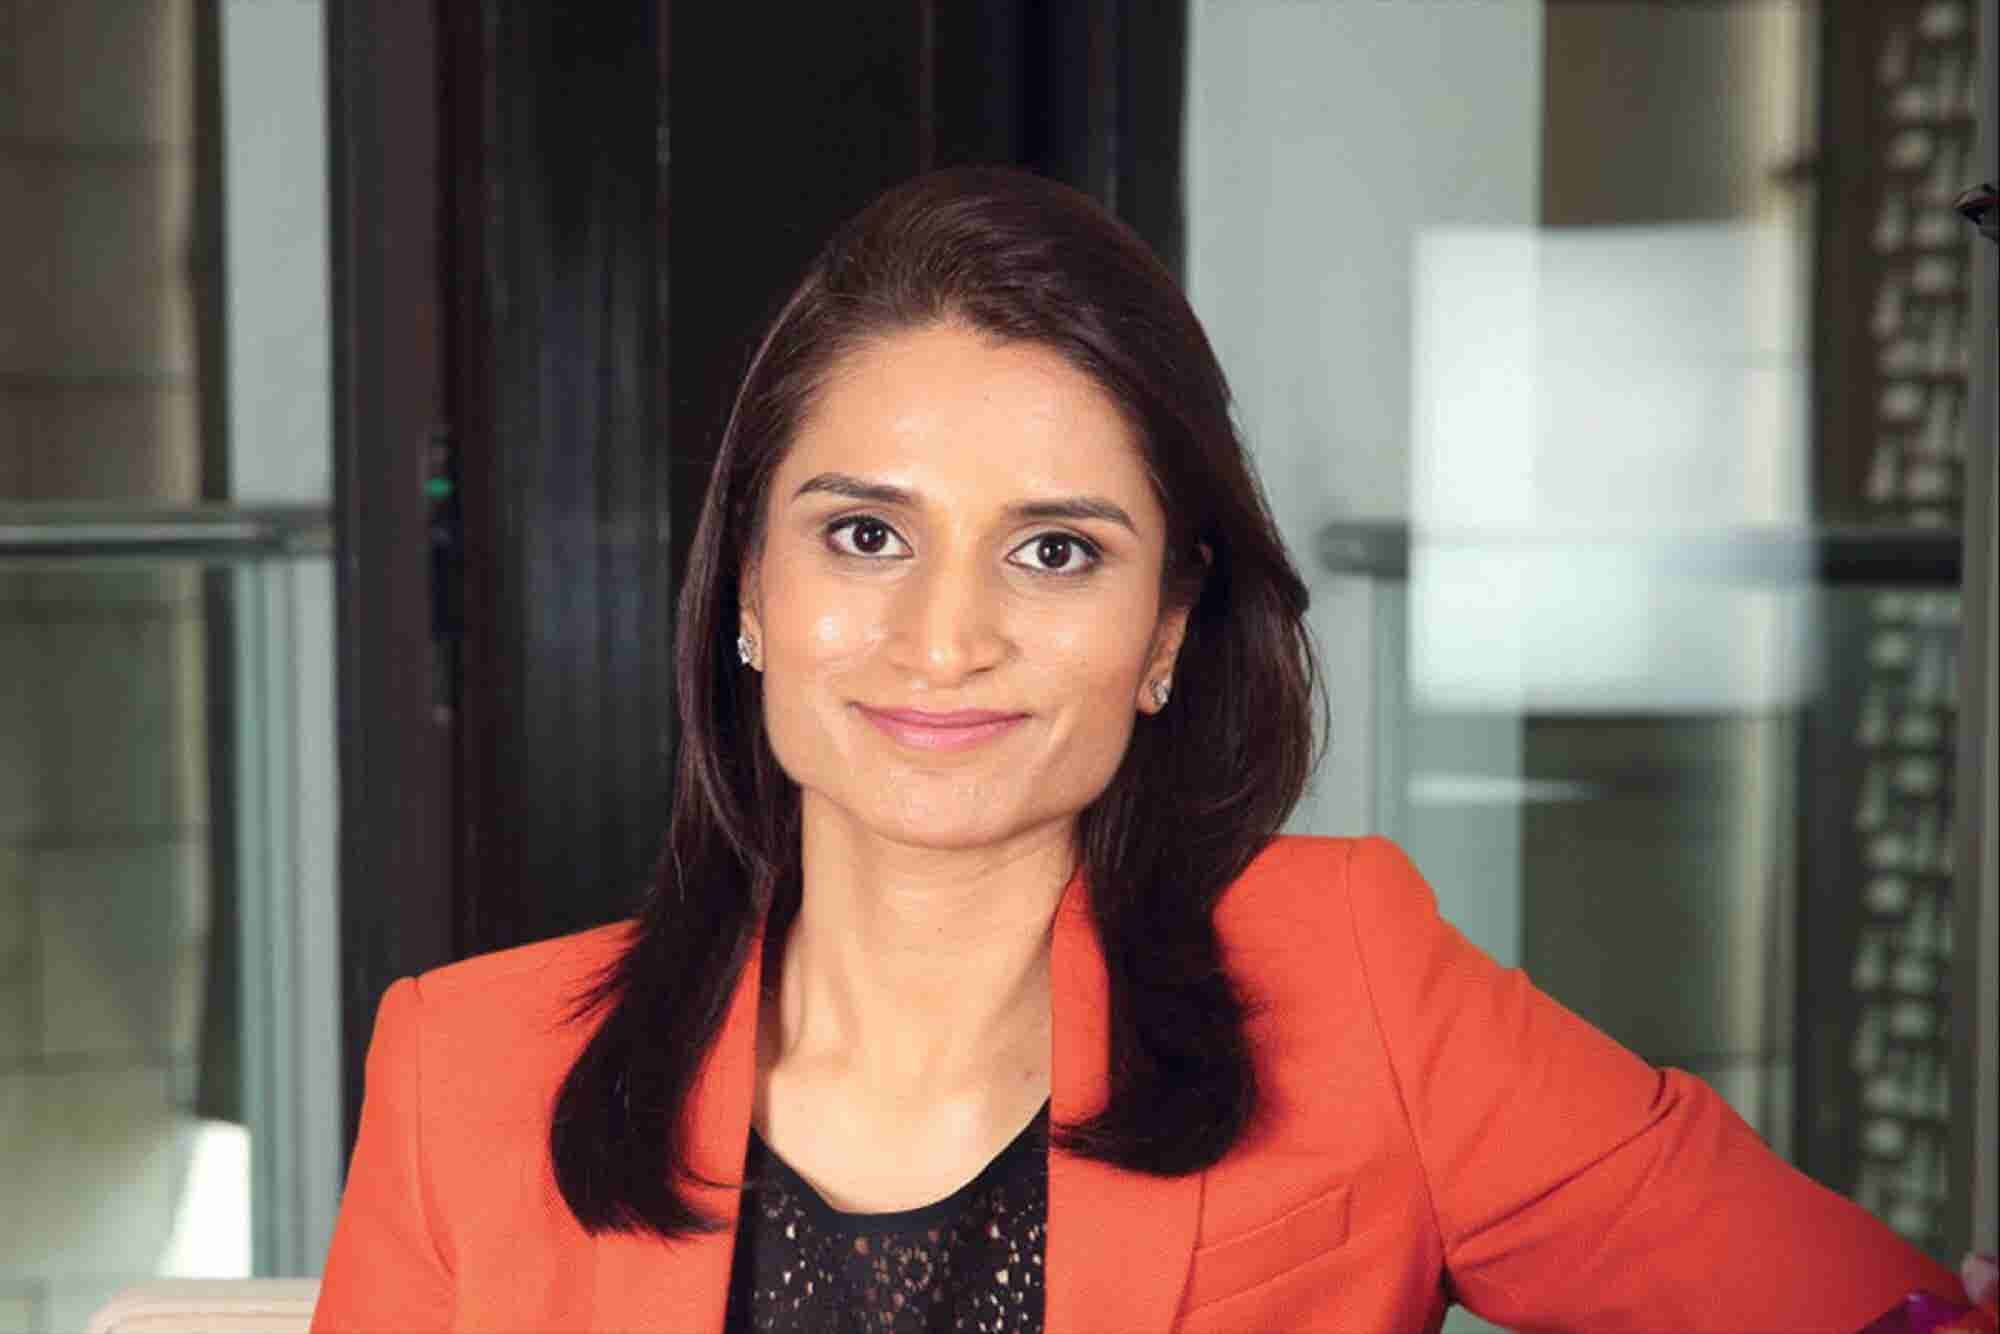 This Shepreneur's Latest Venture is a Super Specialty Healthcare Facility